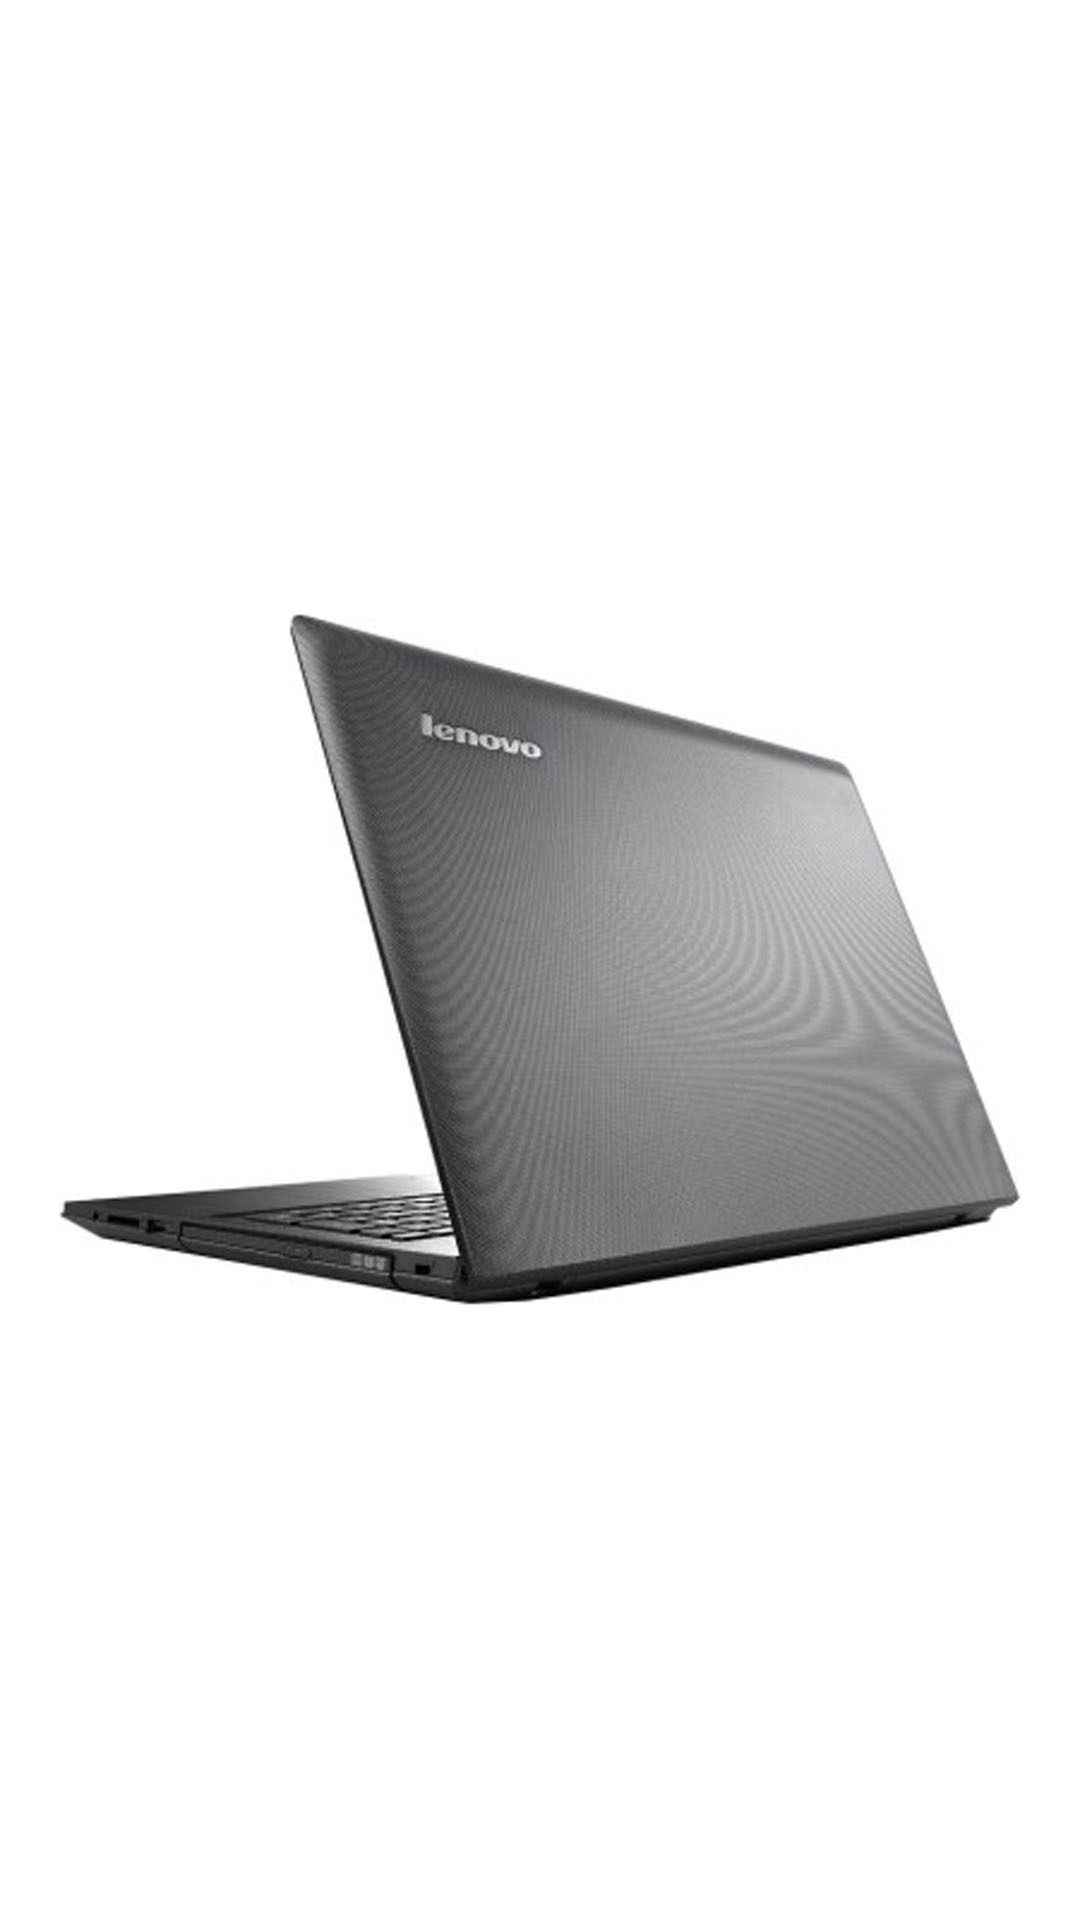 Lenovo Notebook G50-45 (80E301N3IN) (APU Quad Core A8/8 GB/1 TB HDD/39.62 cm (15.6)/Free DOS/2 GB Graphics)